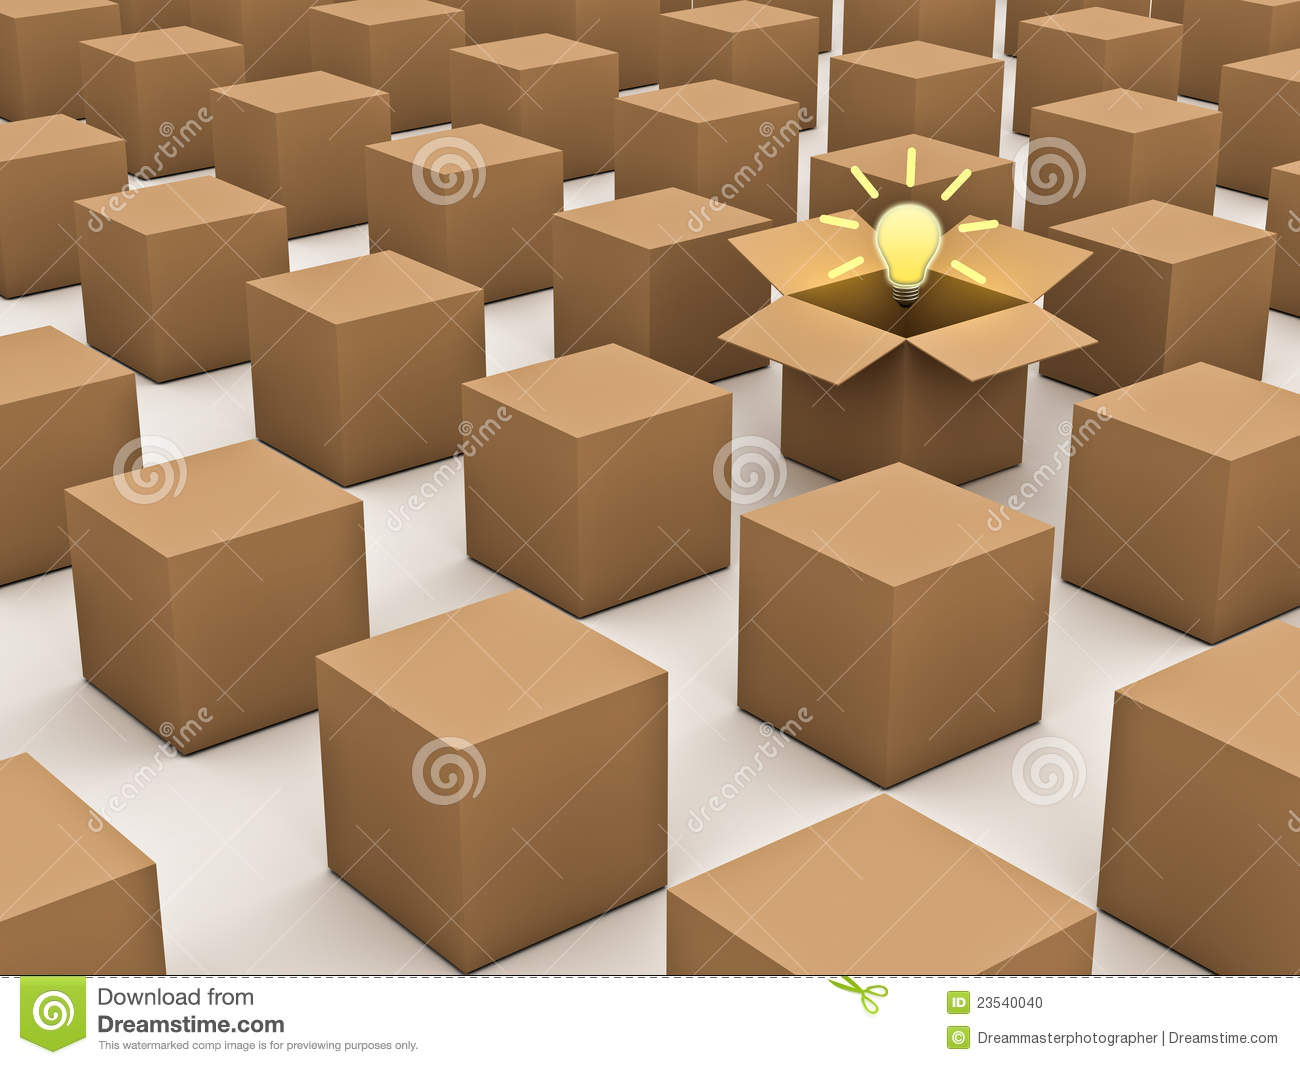 Thinking Outside The Box And Individuality Concept Stock Photo Image 23540040